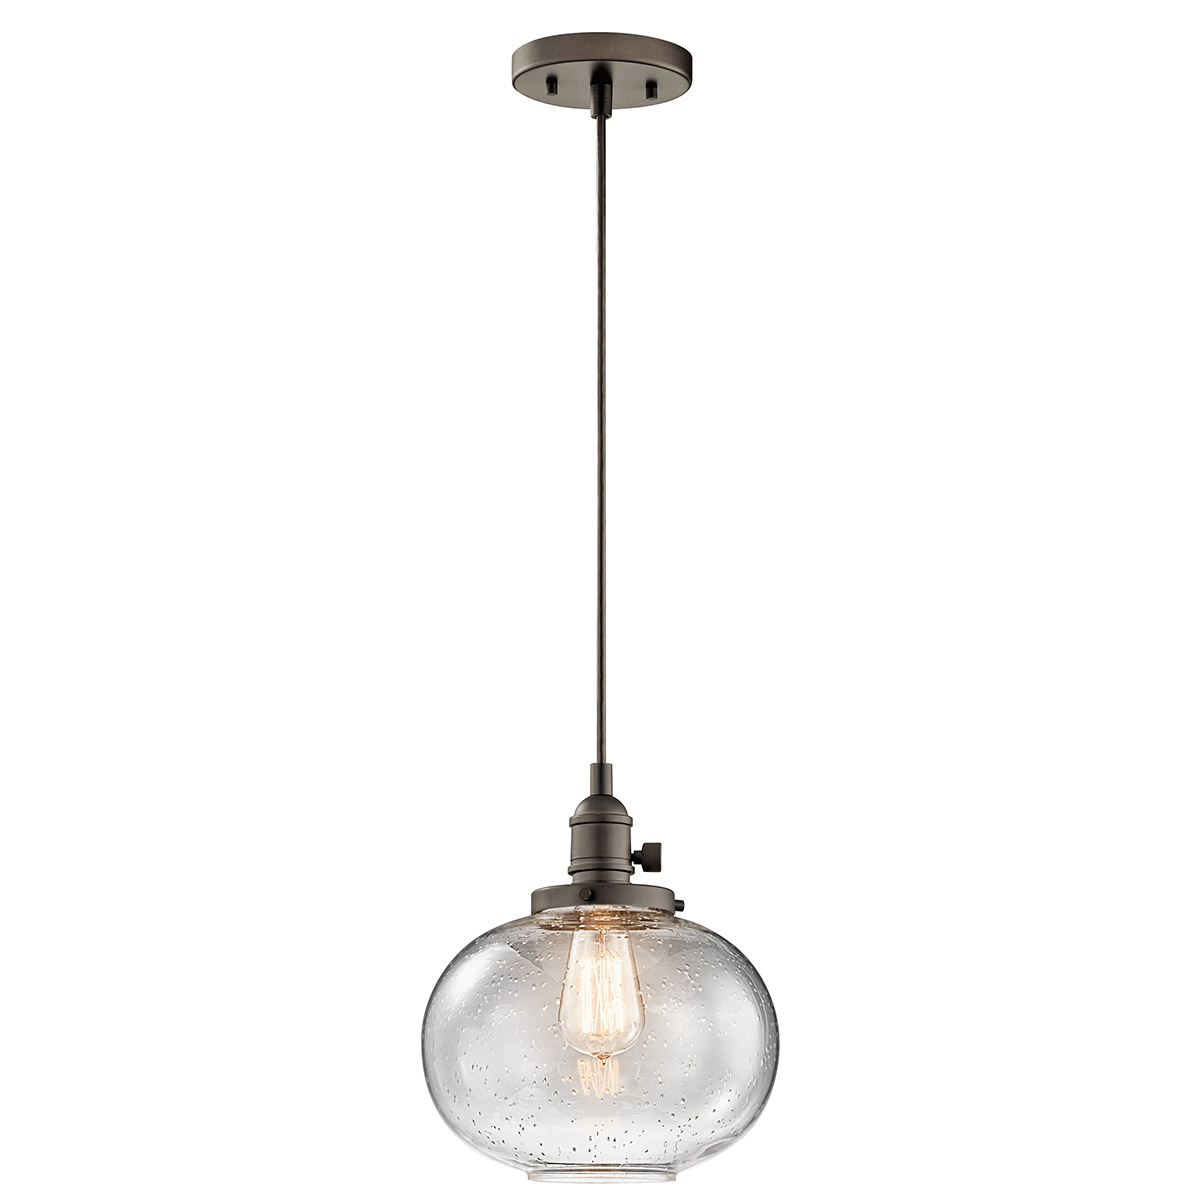 Kichler Lamps: Kichler 43852OZ Avery Mini Pendant